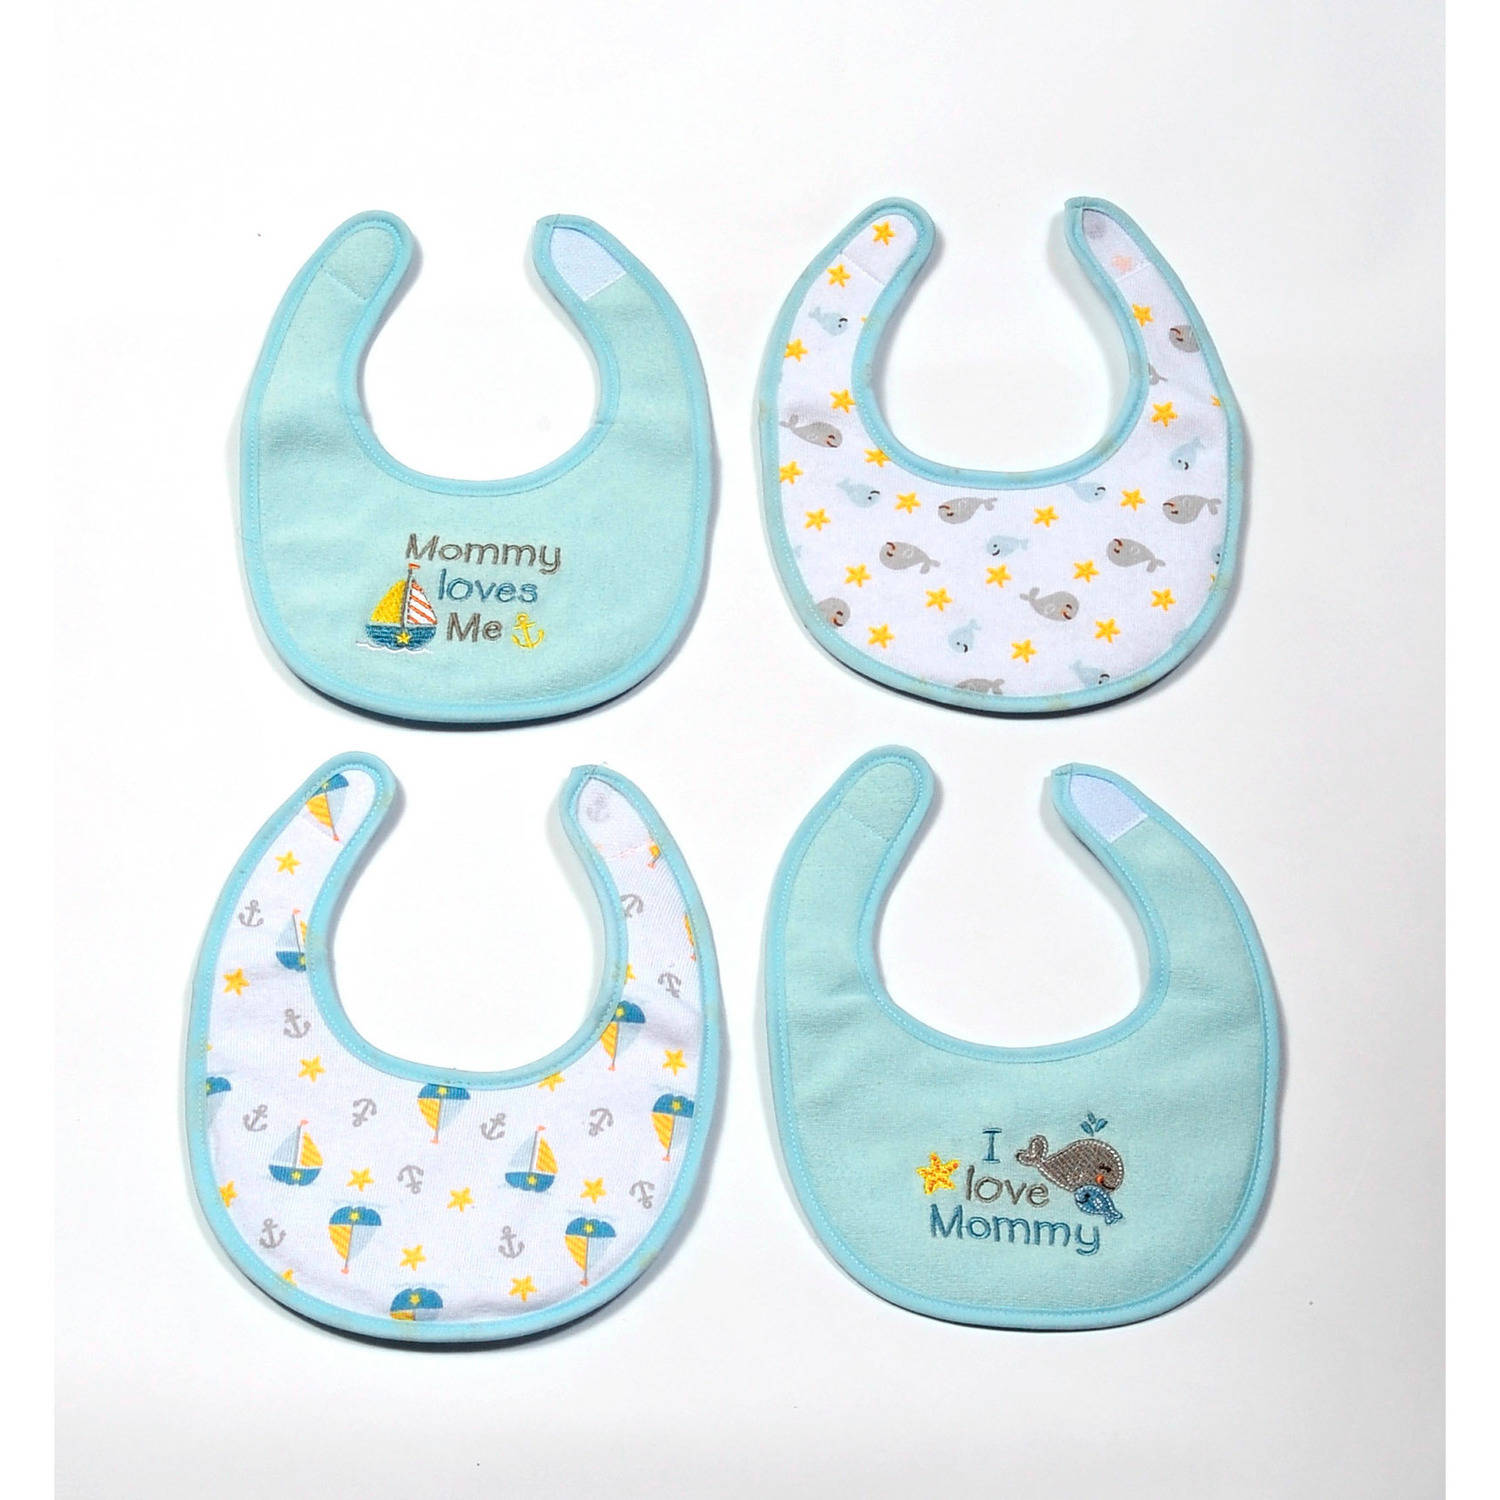 Newborn Boy Bibs, Pack of 4